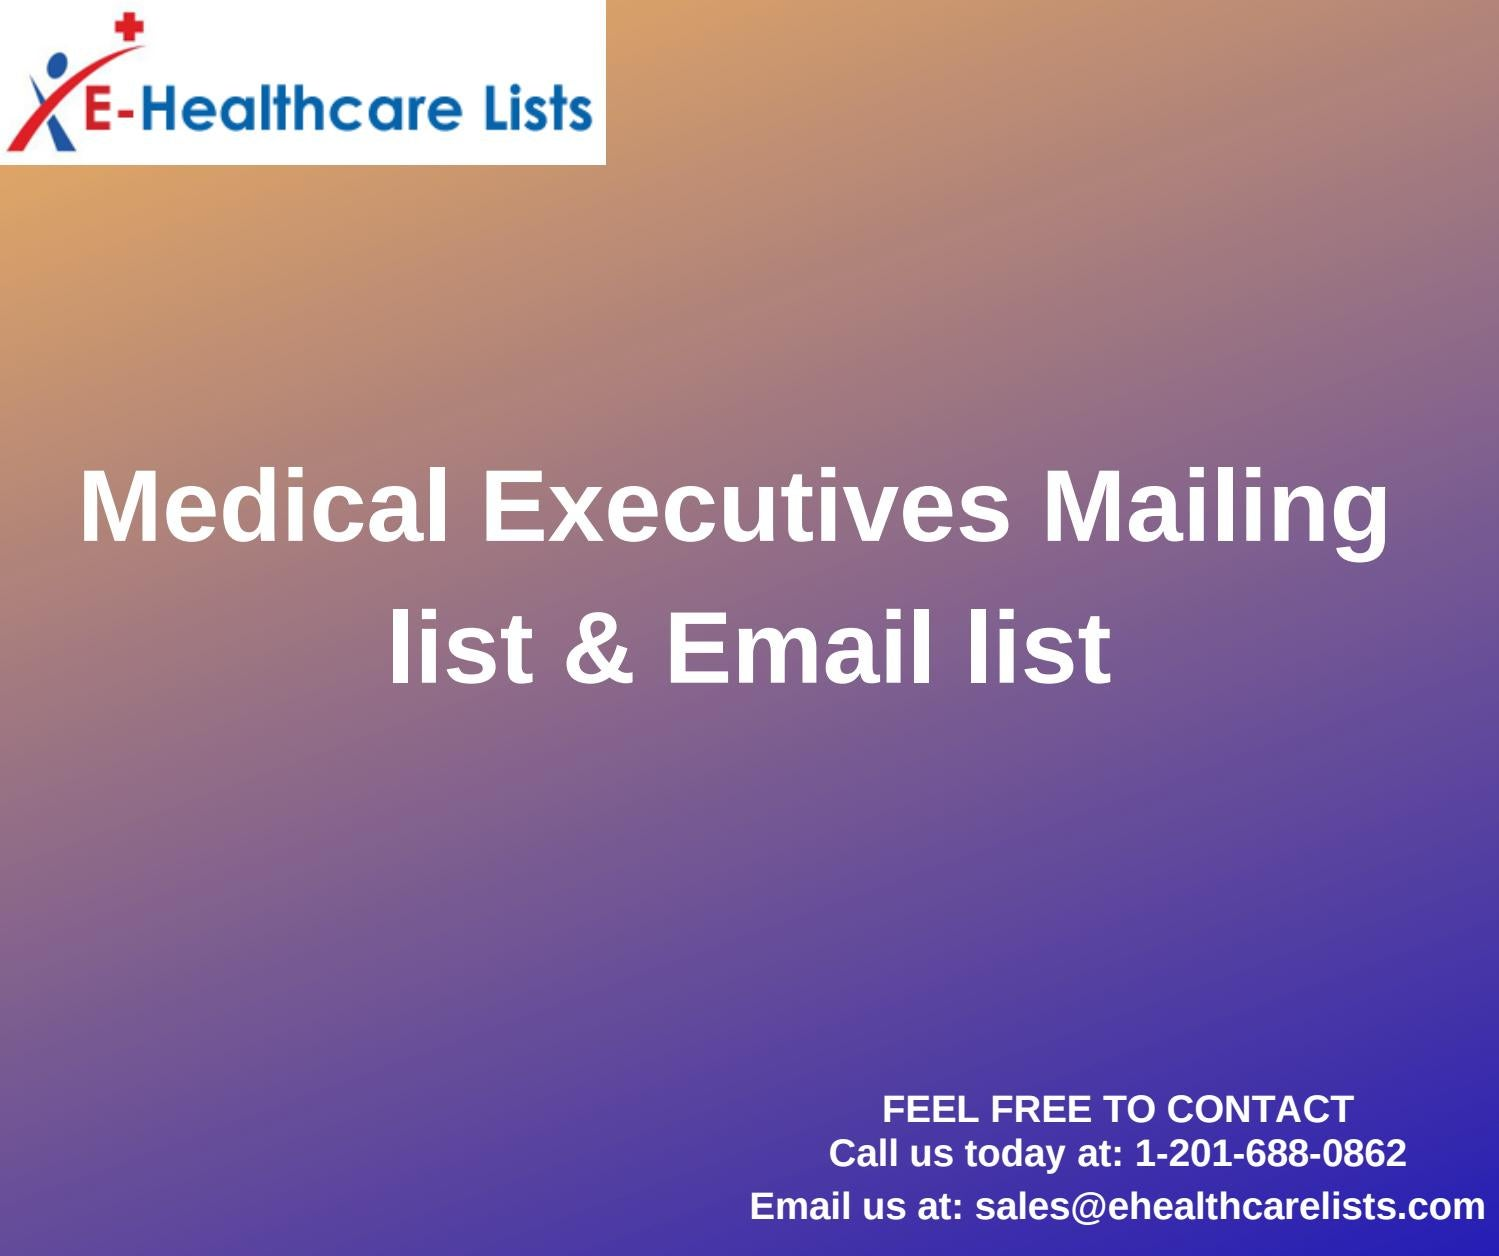 Medical Executives Mailing List| Healthcare Email List in